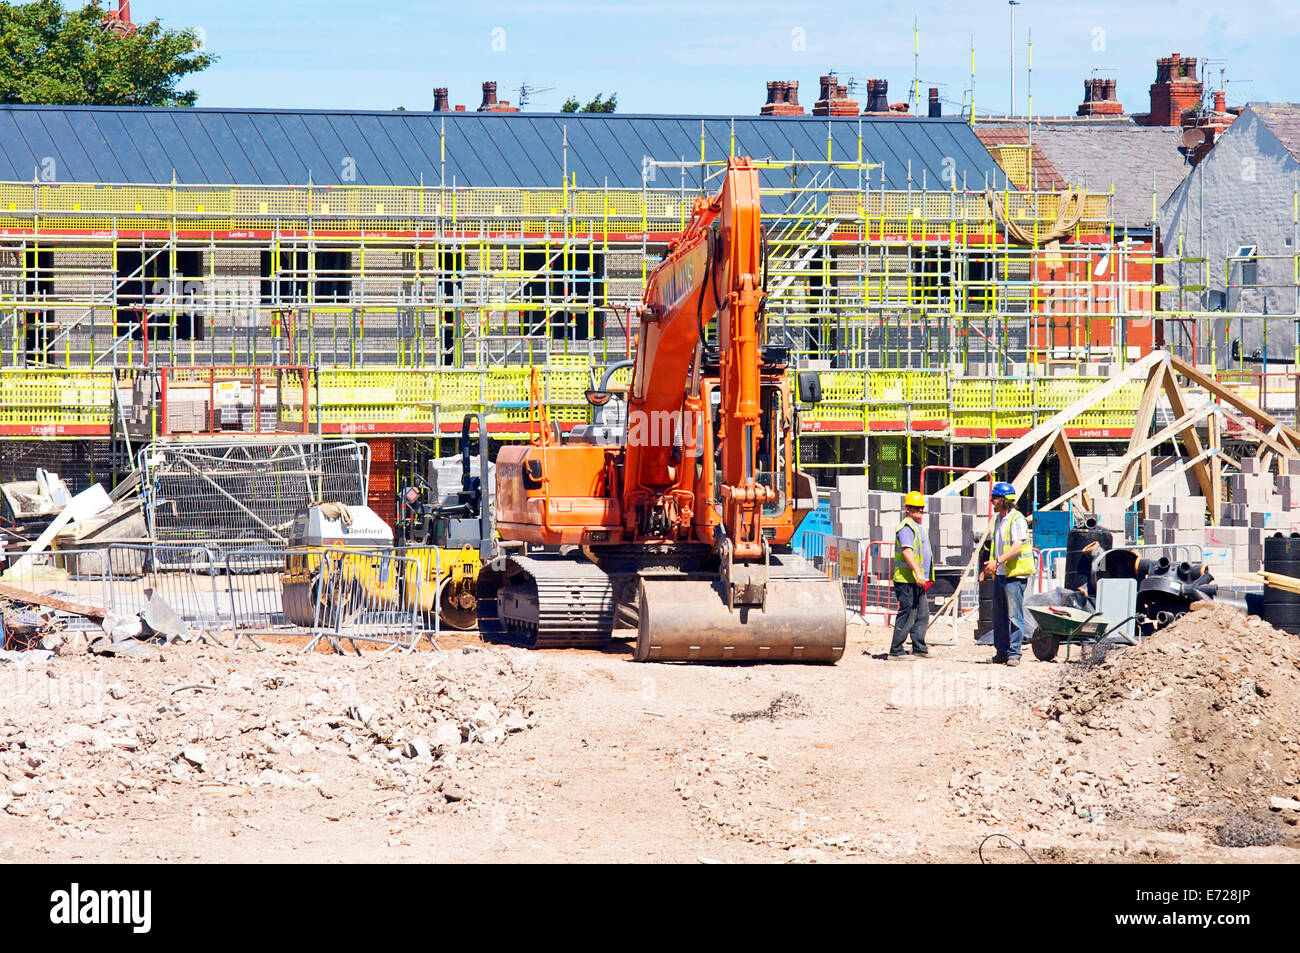 Social housing development being created on site of high rise flats that previously occupied the area - Stock Image